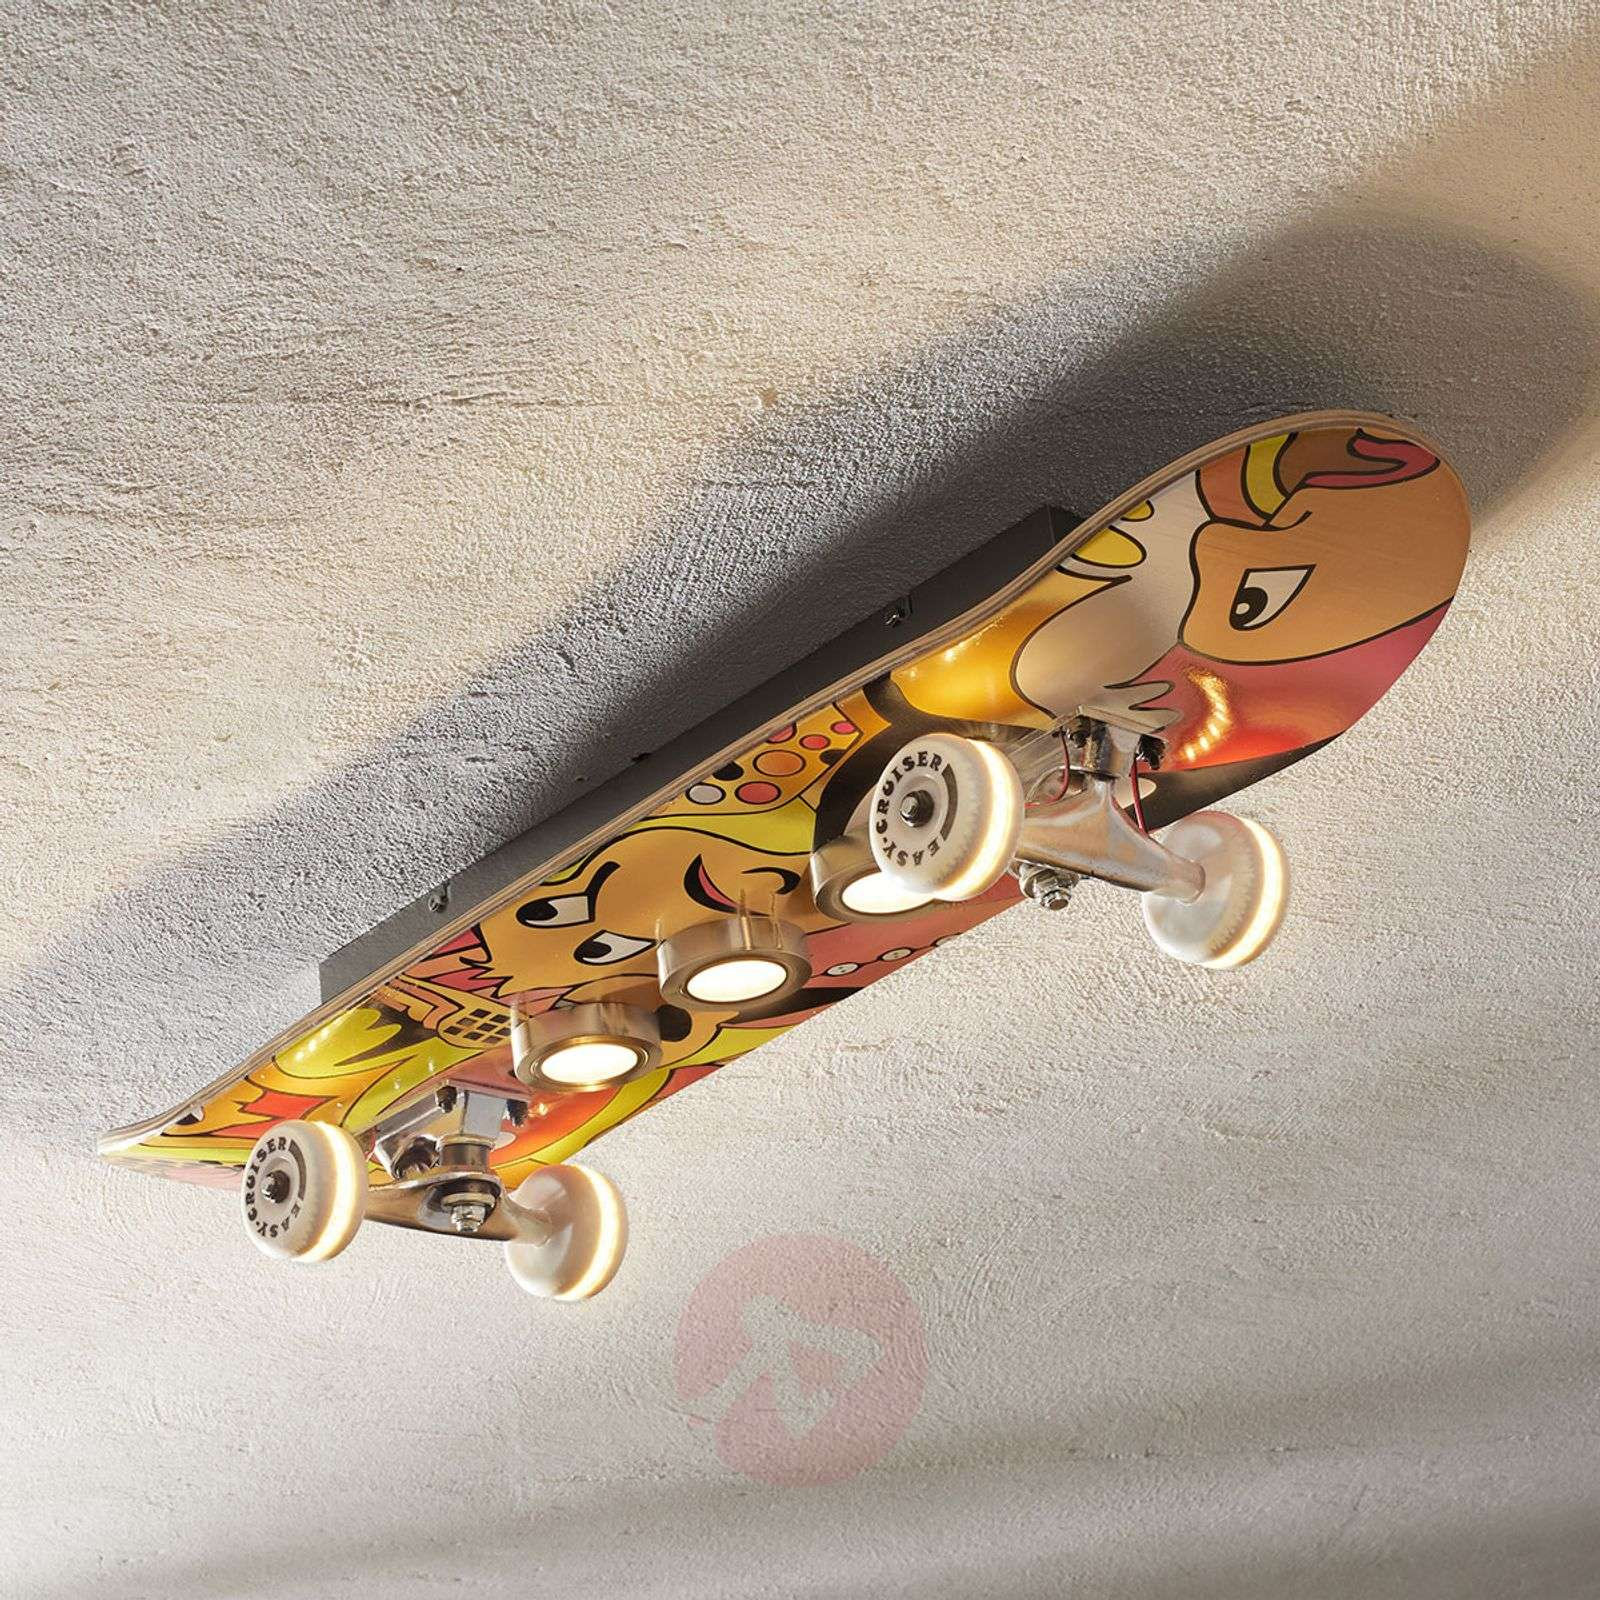 Plafondlamp LED Easy cruiser met skateboard look-3025316-01